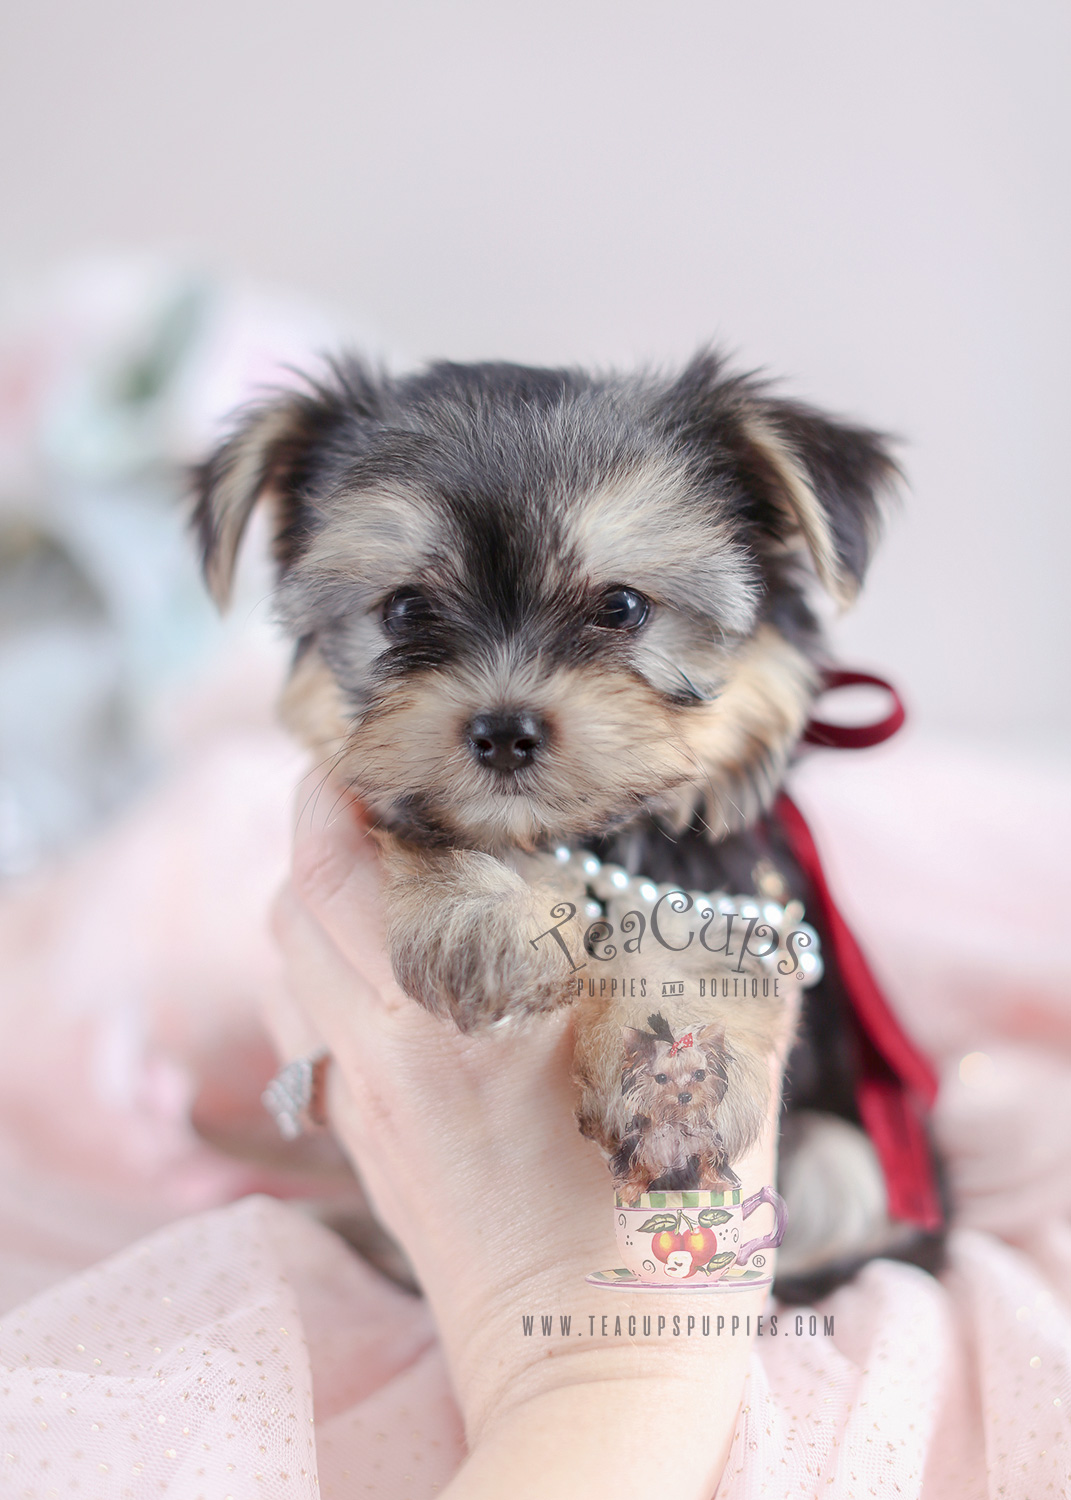 Teacup Puppies and Morkies For Sale in South Florida